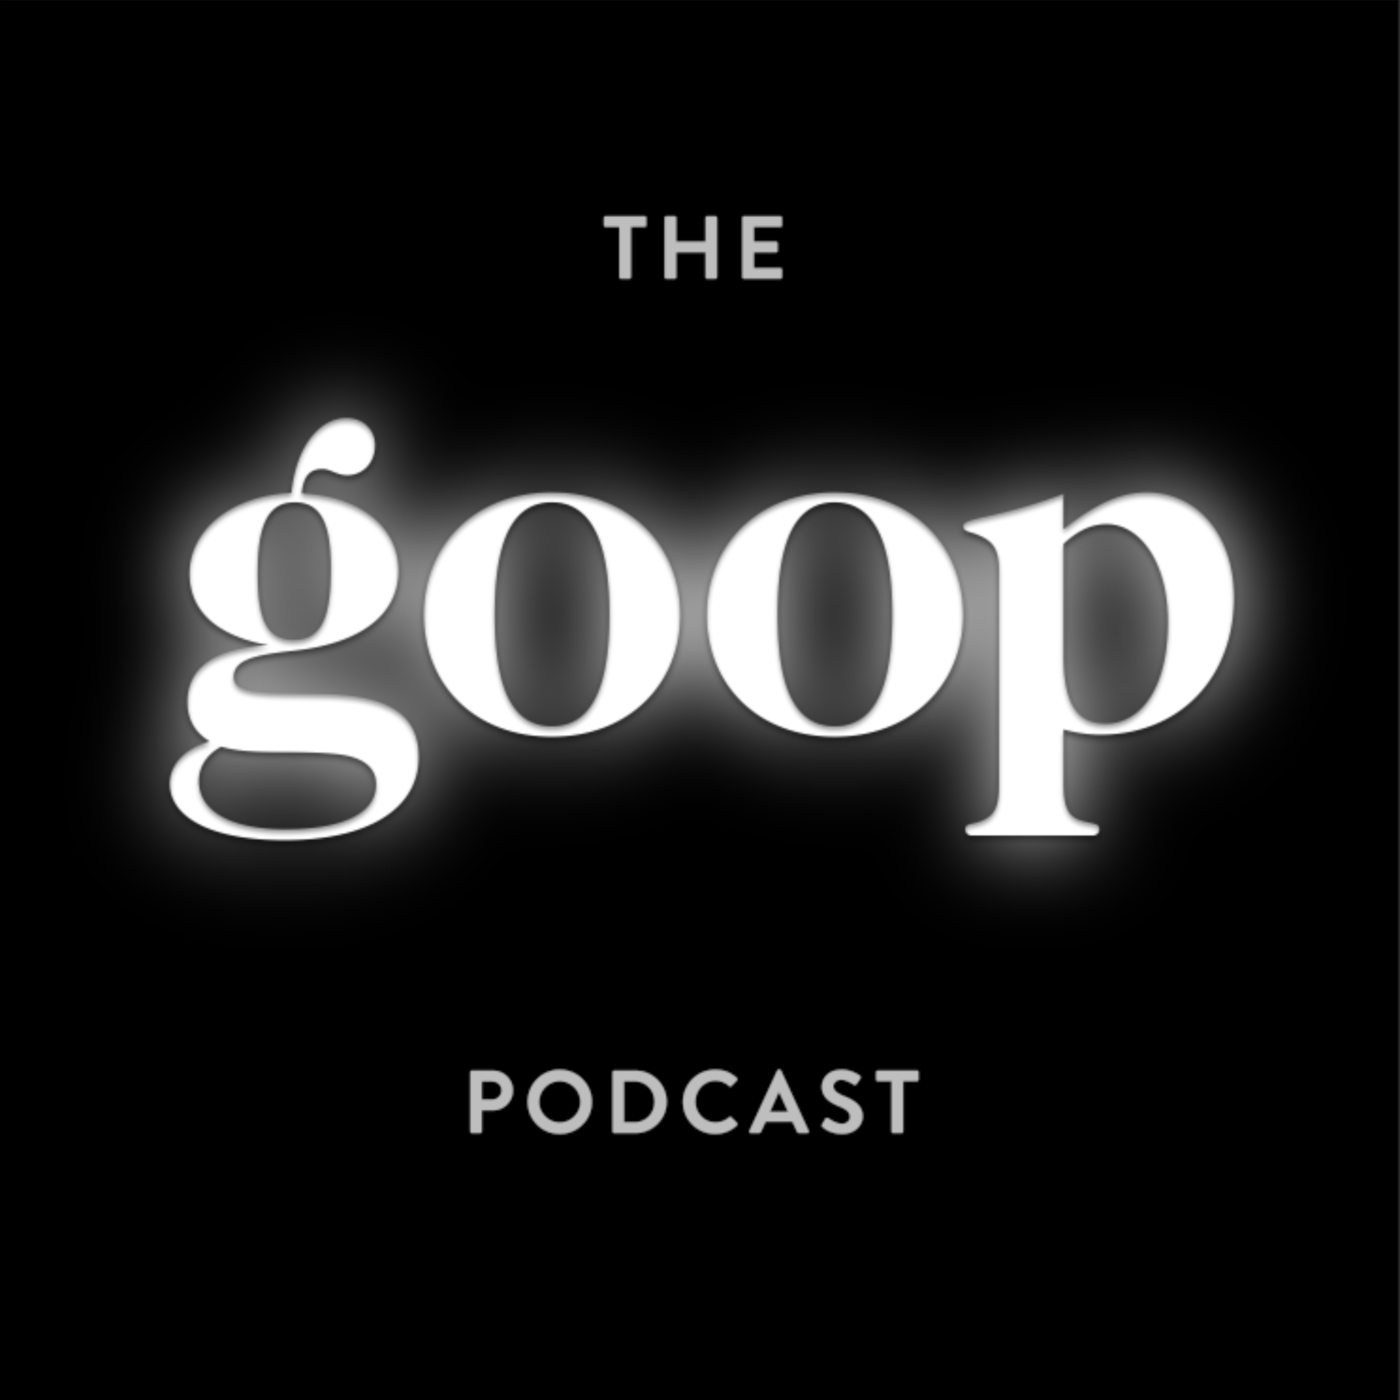 podcast thumbnail for 'The goop Podcast'